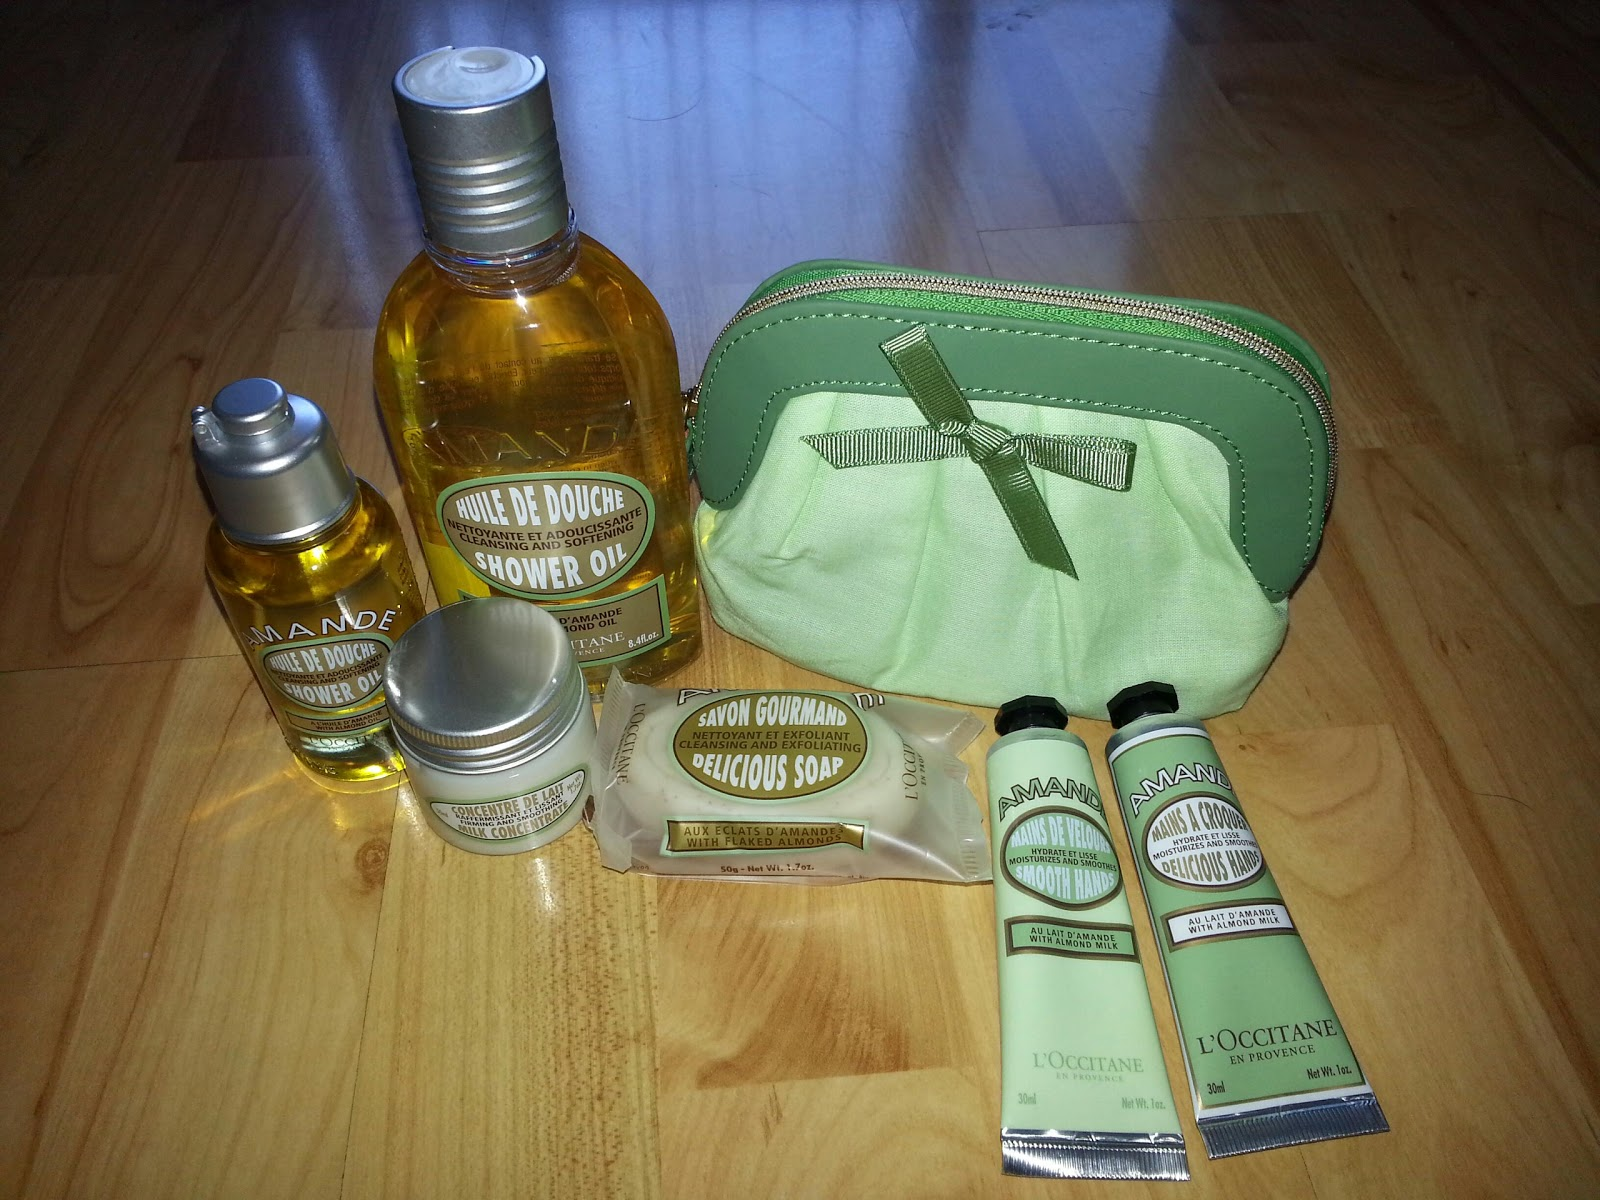 Yesterday I Stopped By LOccitane Shop To Pick Up A Birthday Present For My Friend Got Her Picnic In Provence Collection